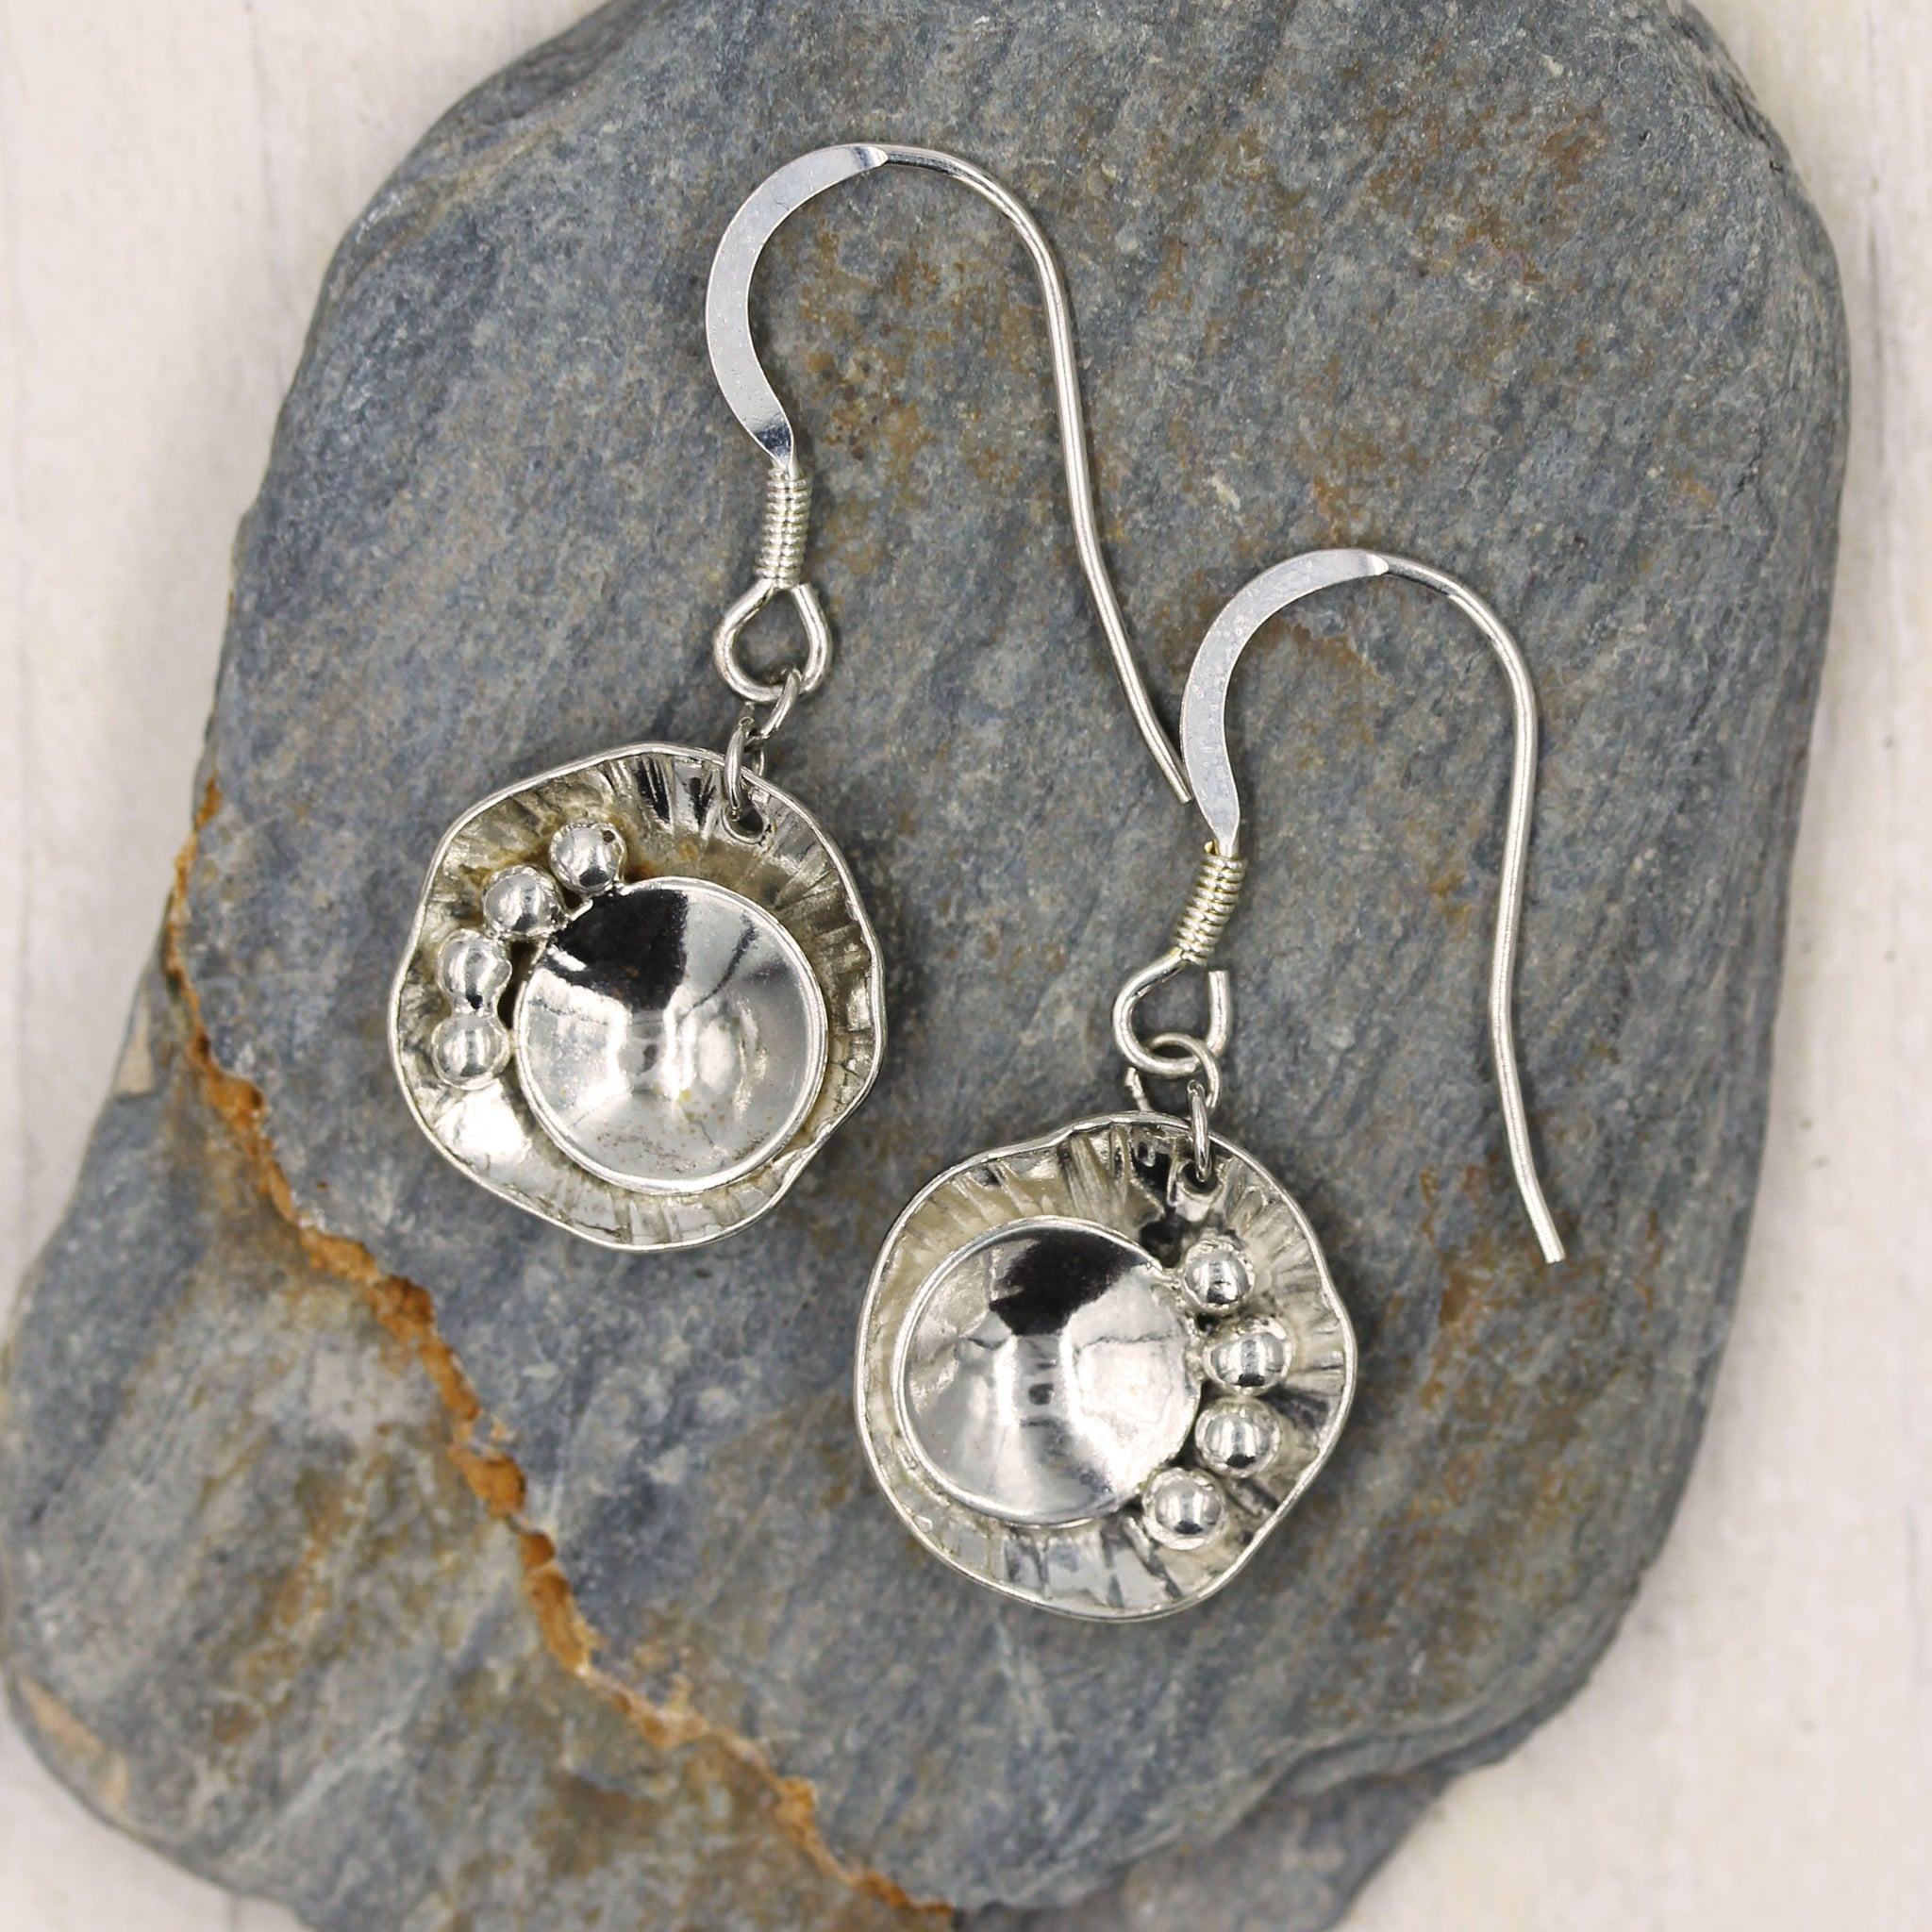 Rock pool inspired drop earrings, sea inspired earrings, handcrafted in recycled silver. by Gemma Tremayne Jewellery